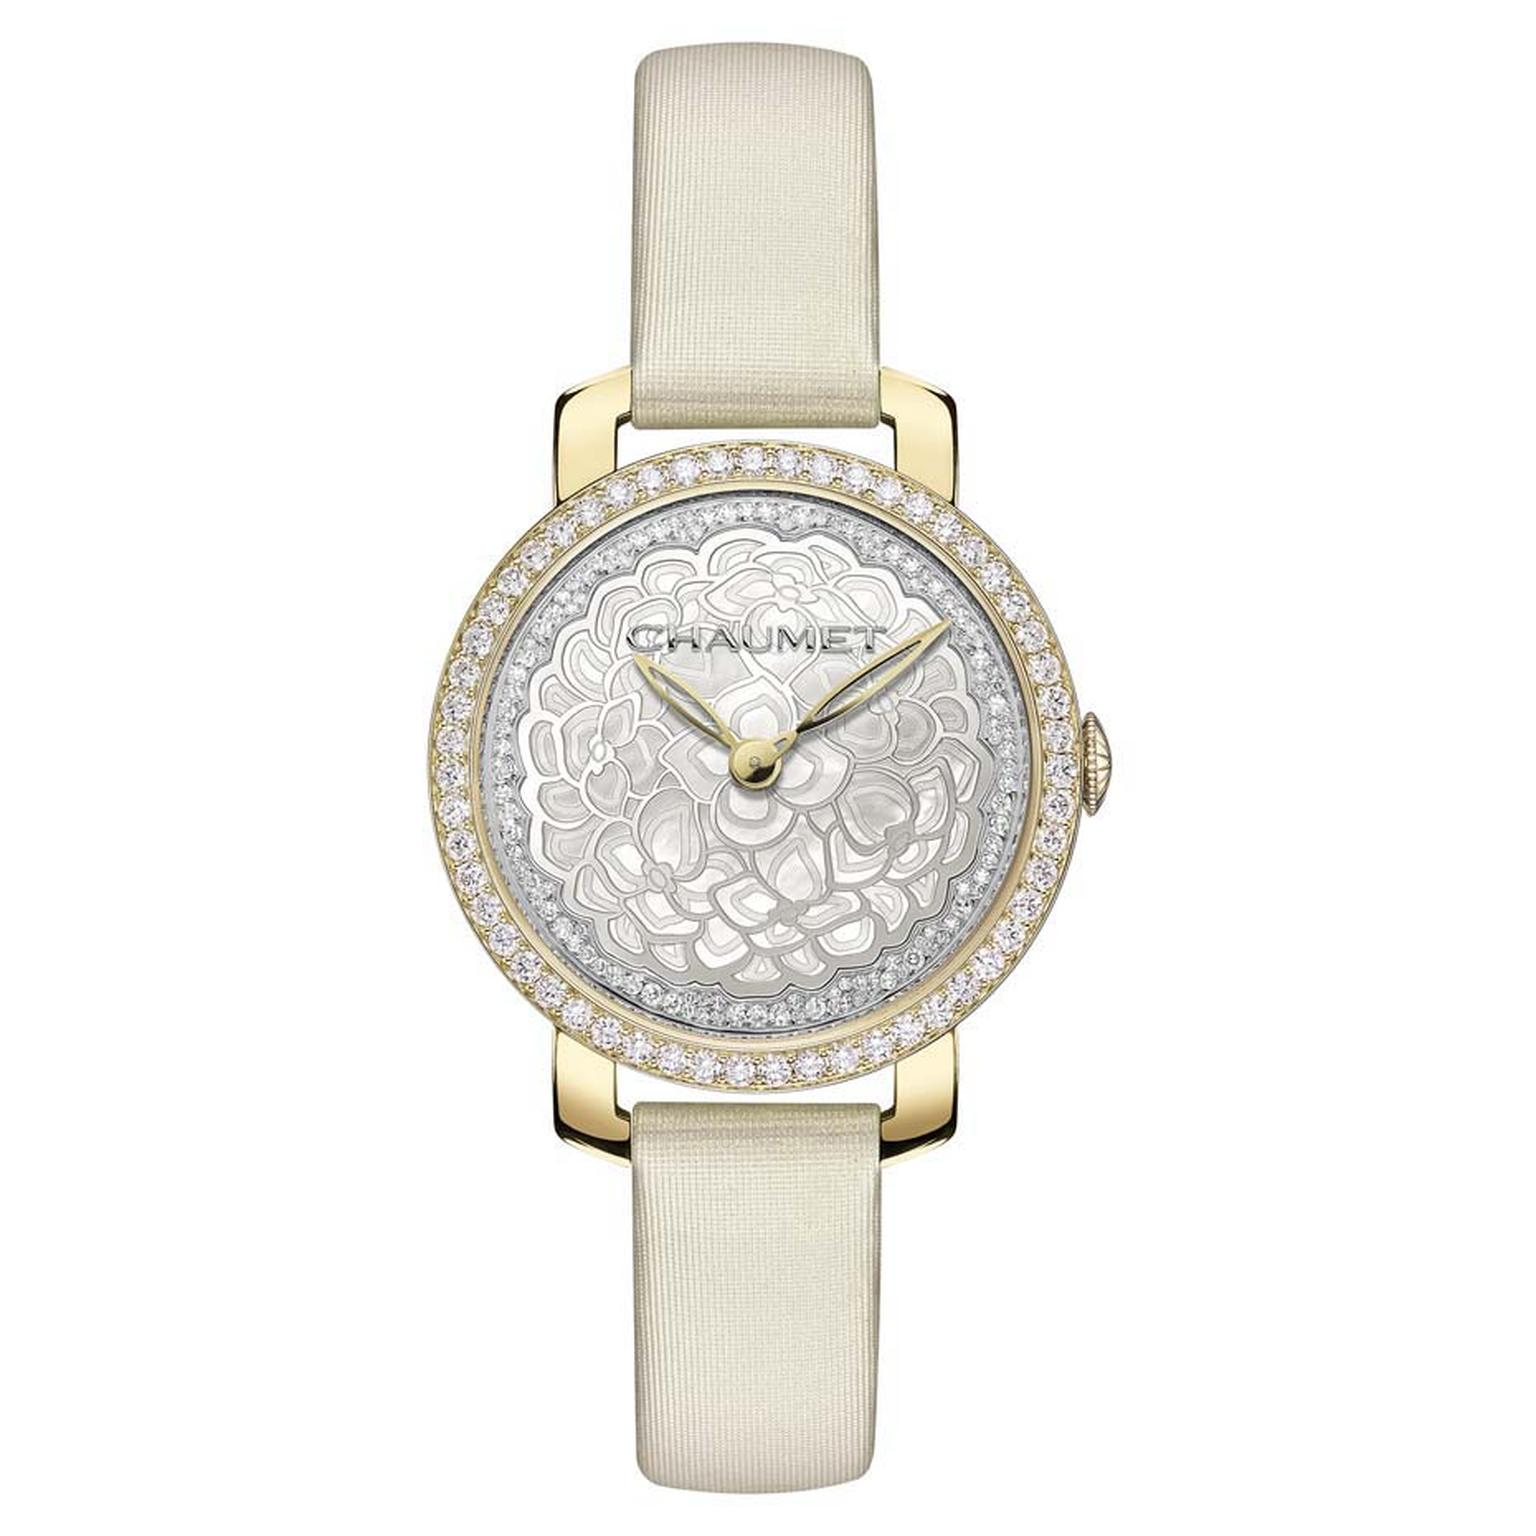 Chaumet Hortensia 31mm watch in yellow gold with a central hydrangea flower crafted in mother-of-pearl is powered by a reliable Swiss quartz movement.